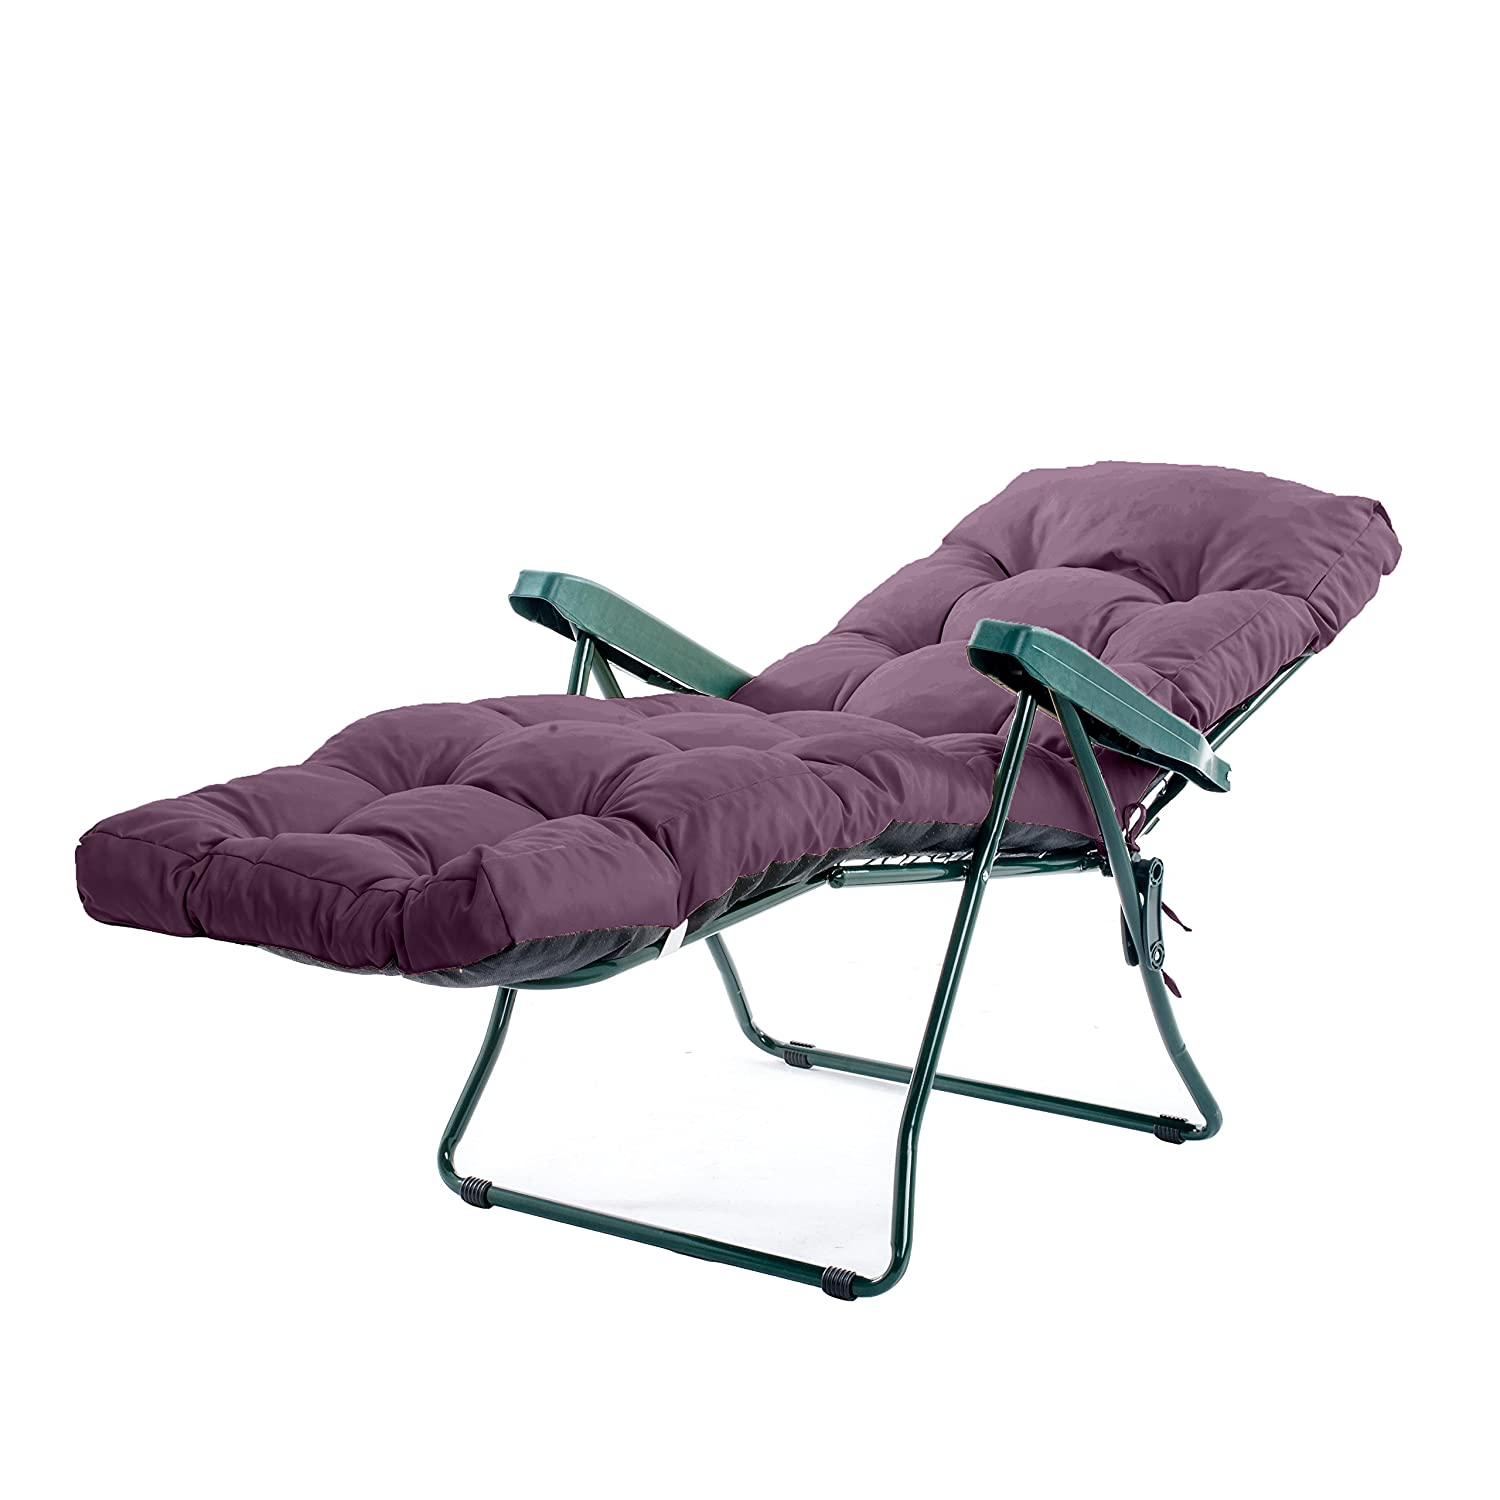 gaixample.org Sunloungers Home & Garden Store Made in the UK ...